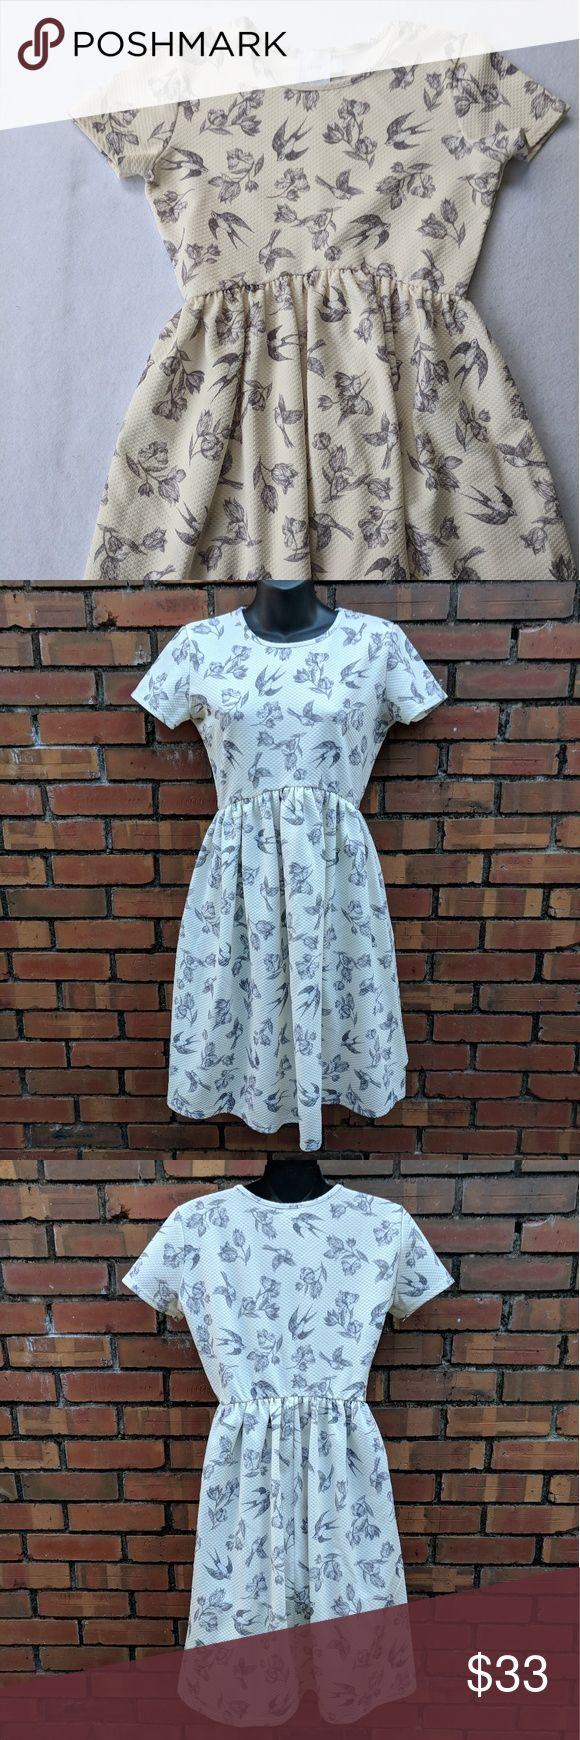 asos Maternity Sparrow Floral Babydoll Skater Dres Pre-owned but in good condition. No flaws, minimal wear. Please see pictures above for measurements.  Offers are always welcome.   30% off bundles of 2+ items.   E&T ASOS Maternity Dresses